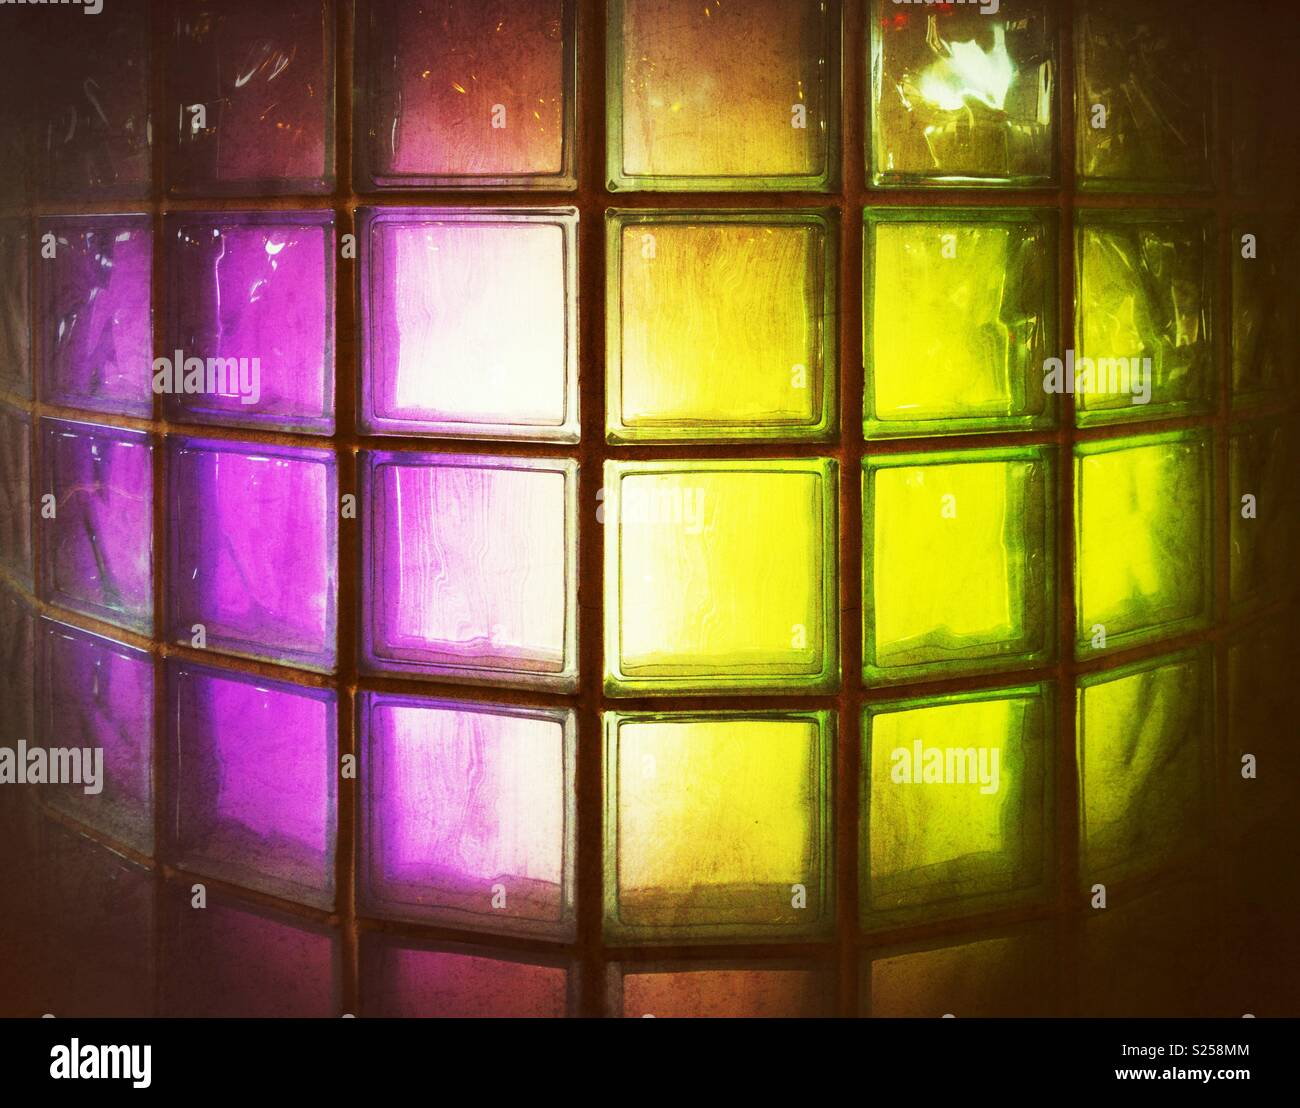 Glass Block Wall Blocks Stock Photos & Glass Block Wall Blocks Stock ...